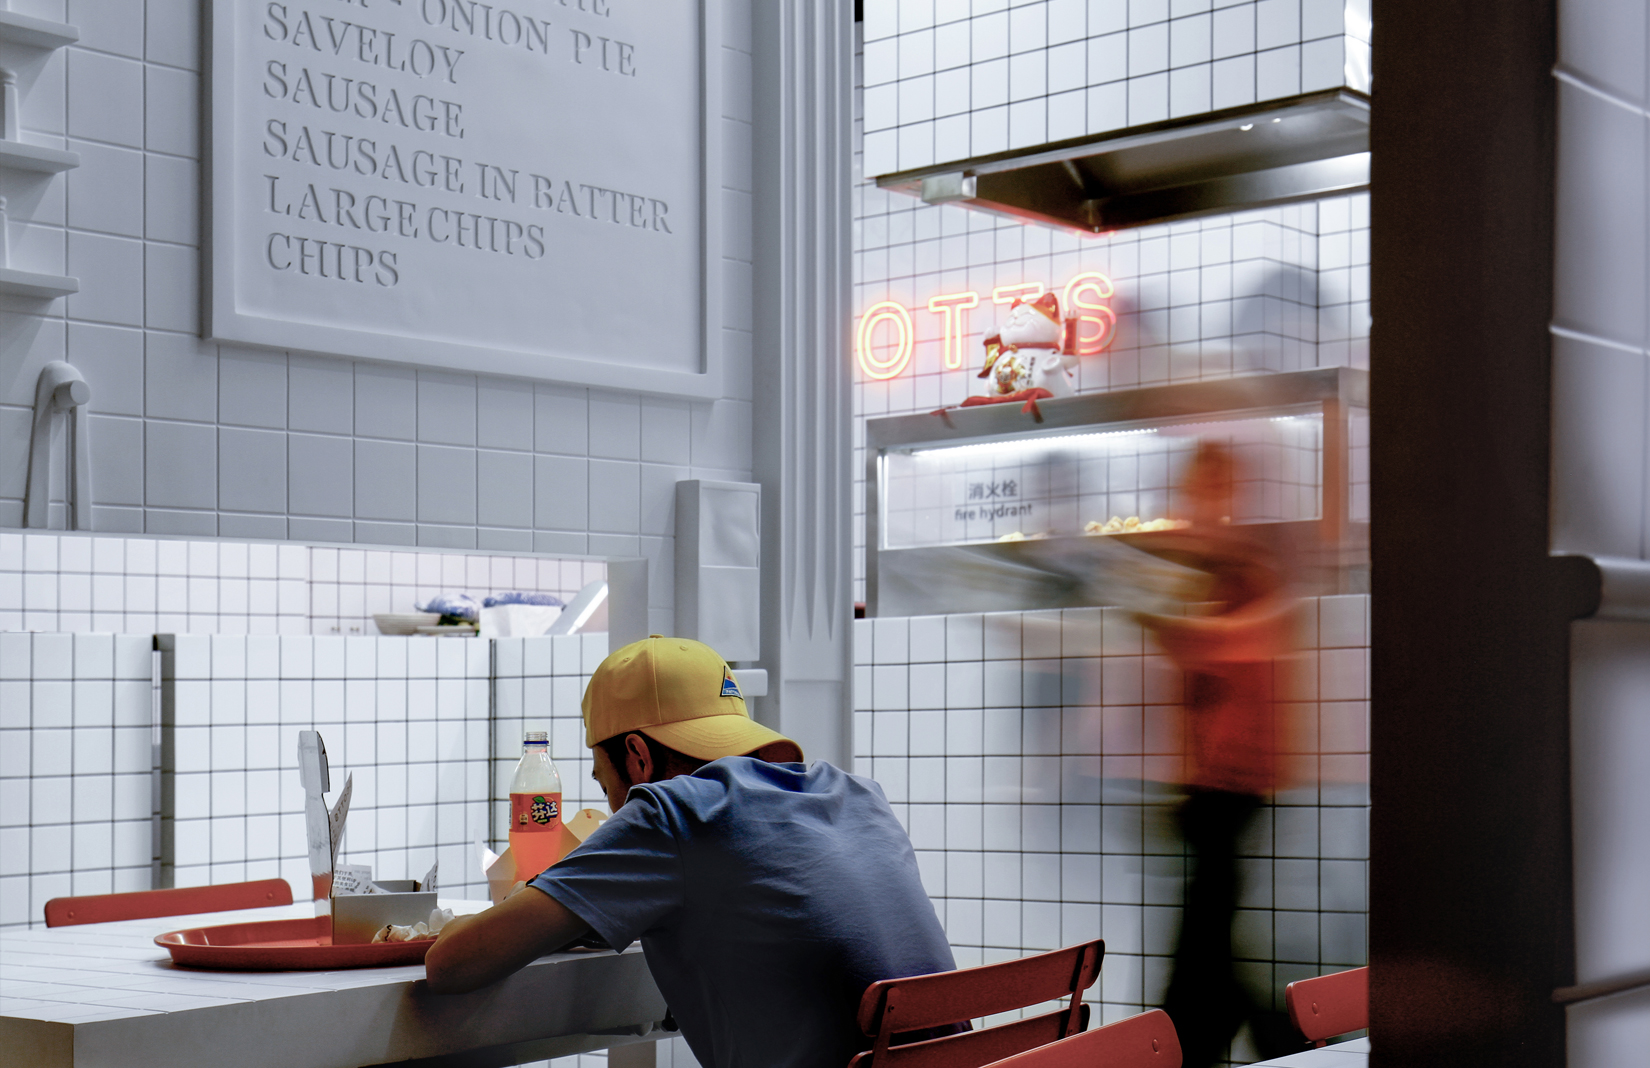 China S Version Of The Classic British Chip Shop Isn T What You Might Expect The Spaces